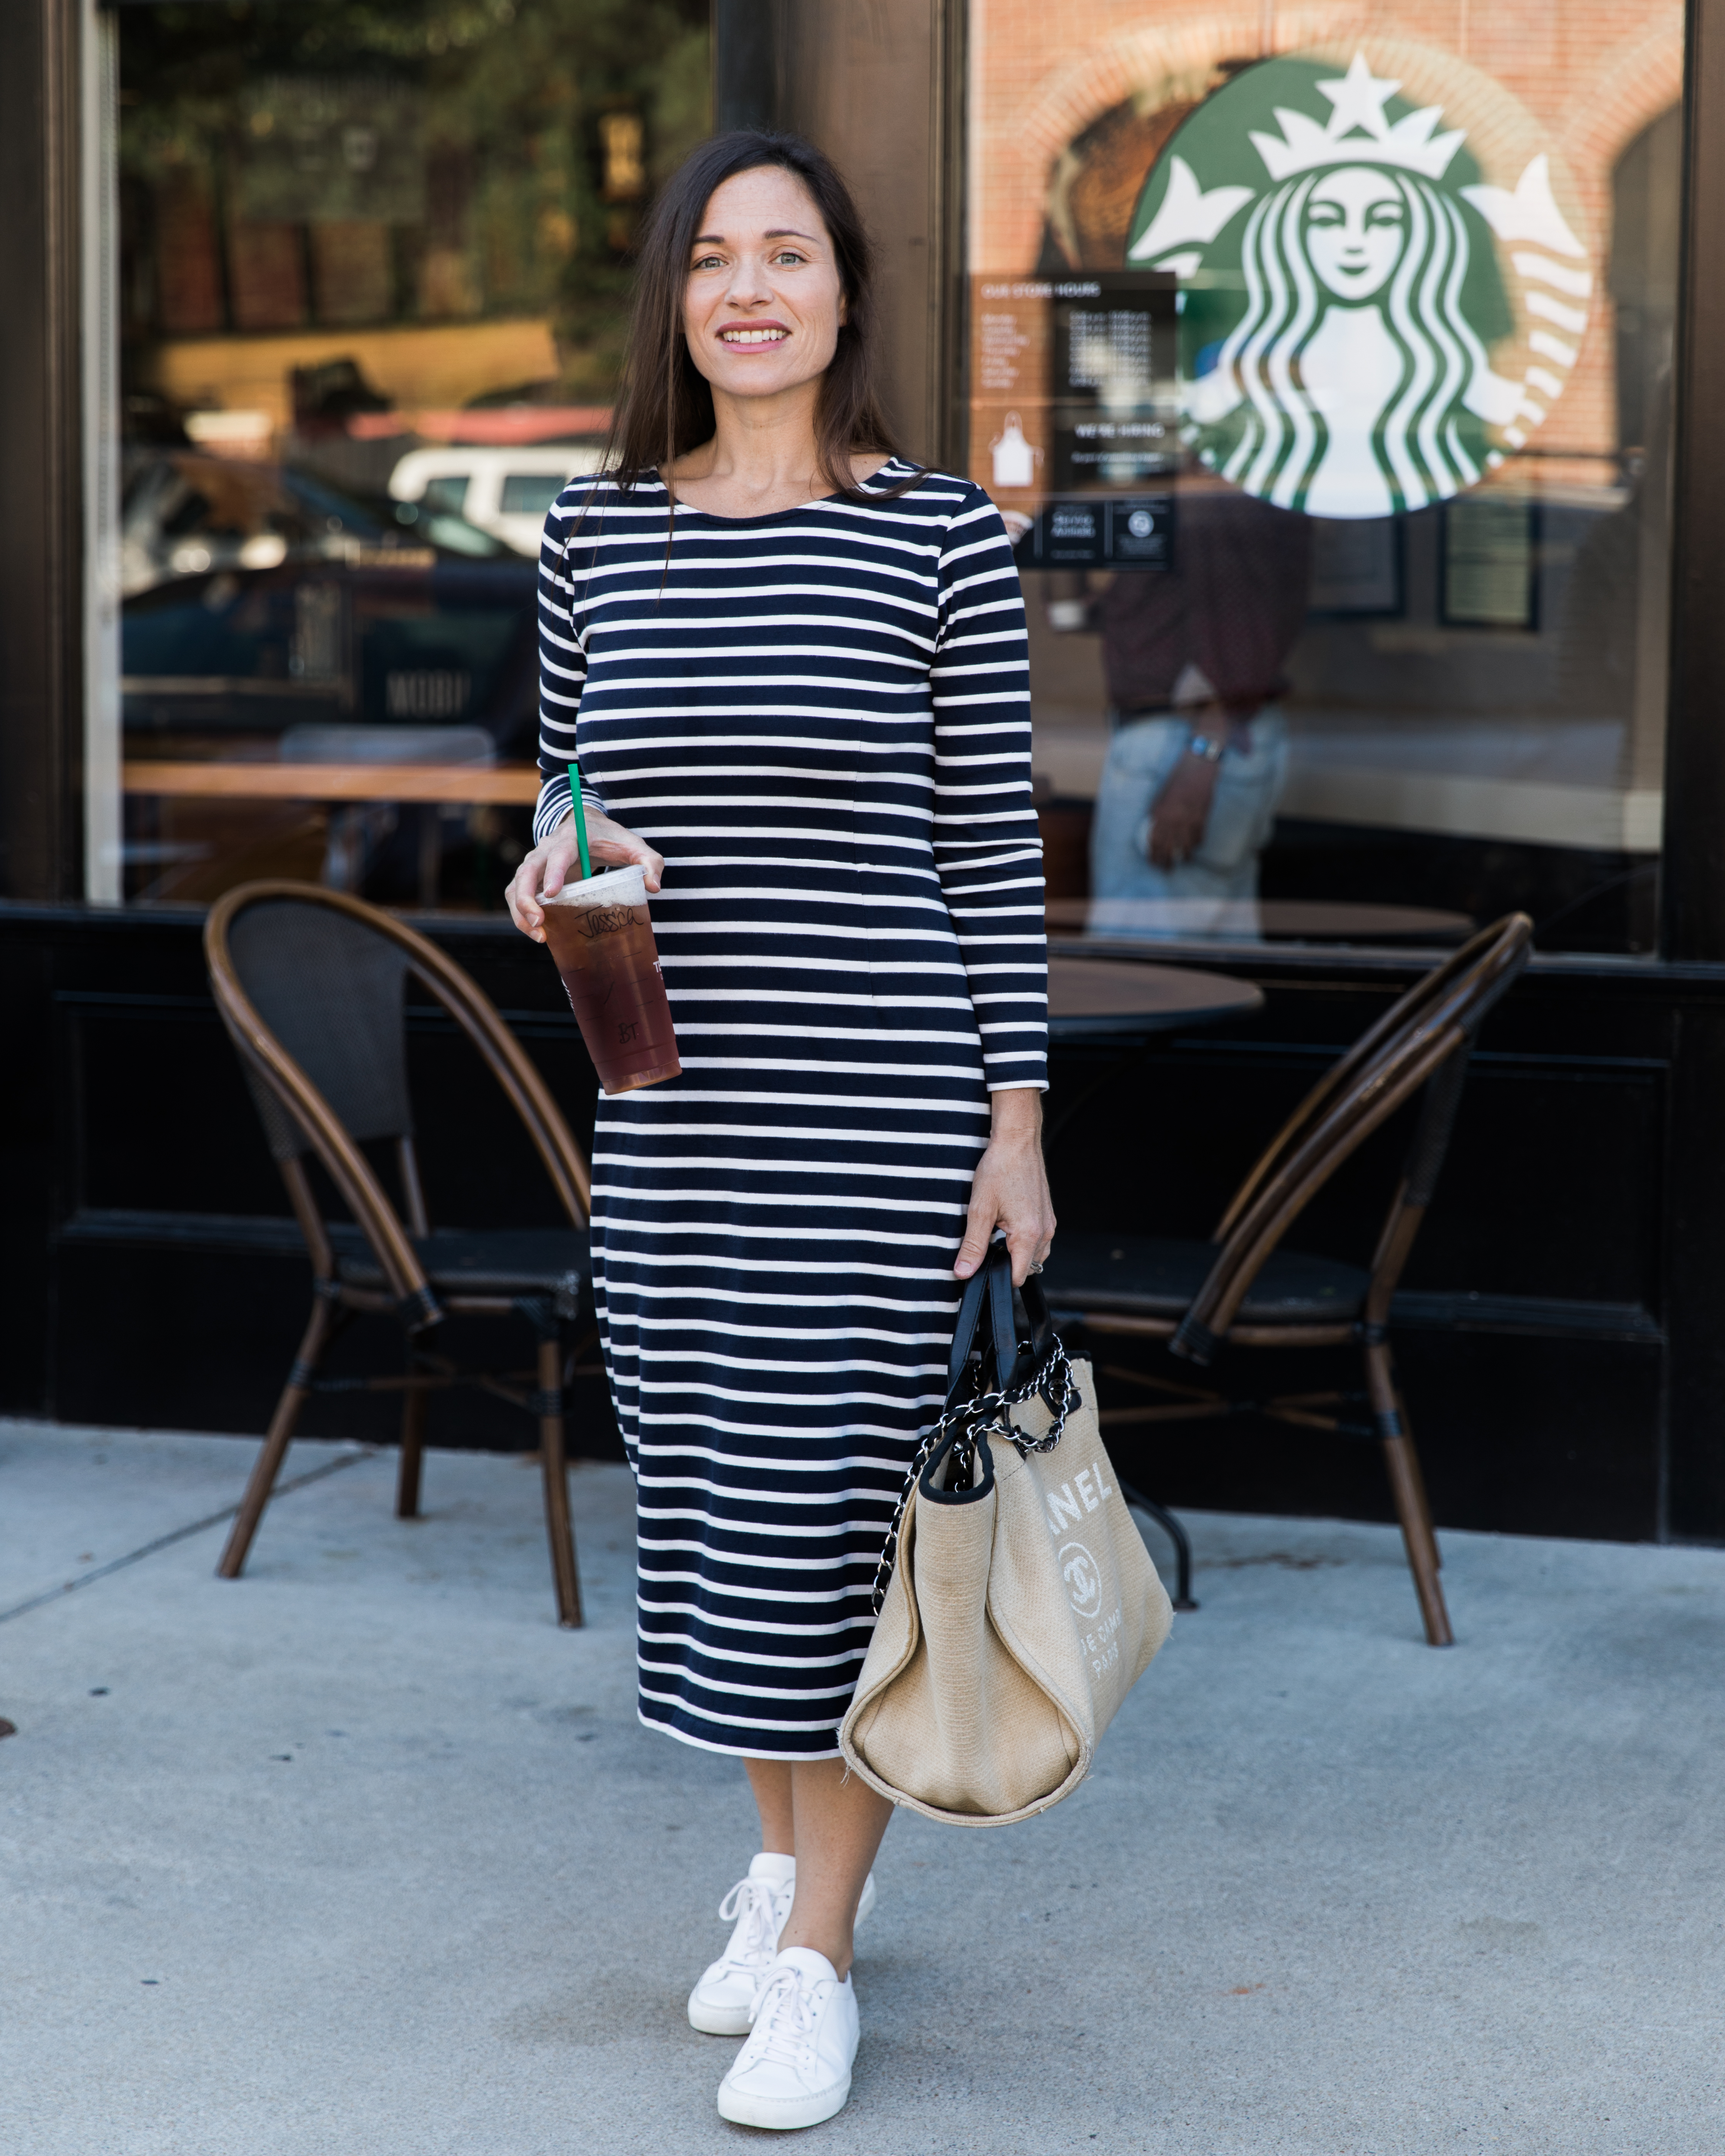 Athleisure j.crew midi dress style at starbucks